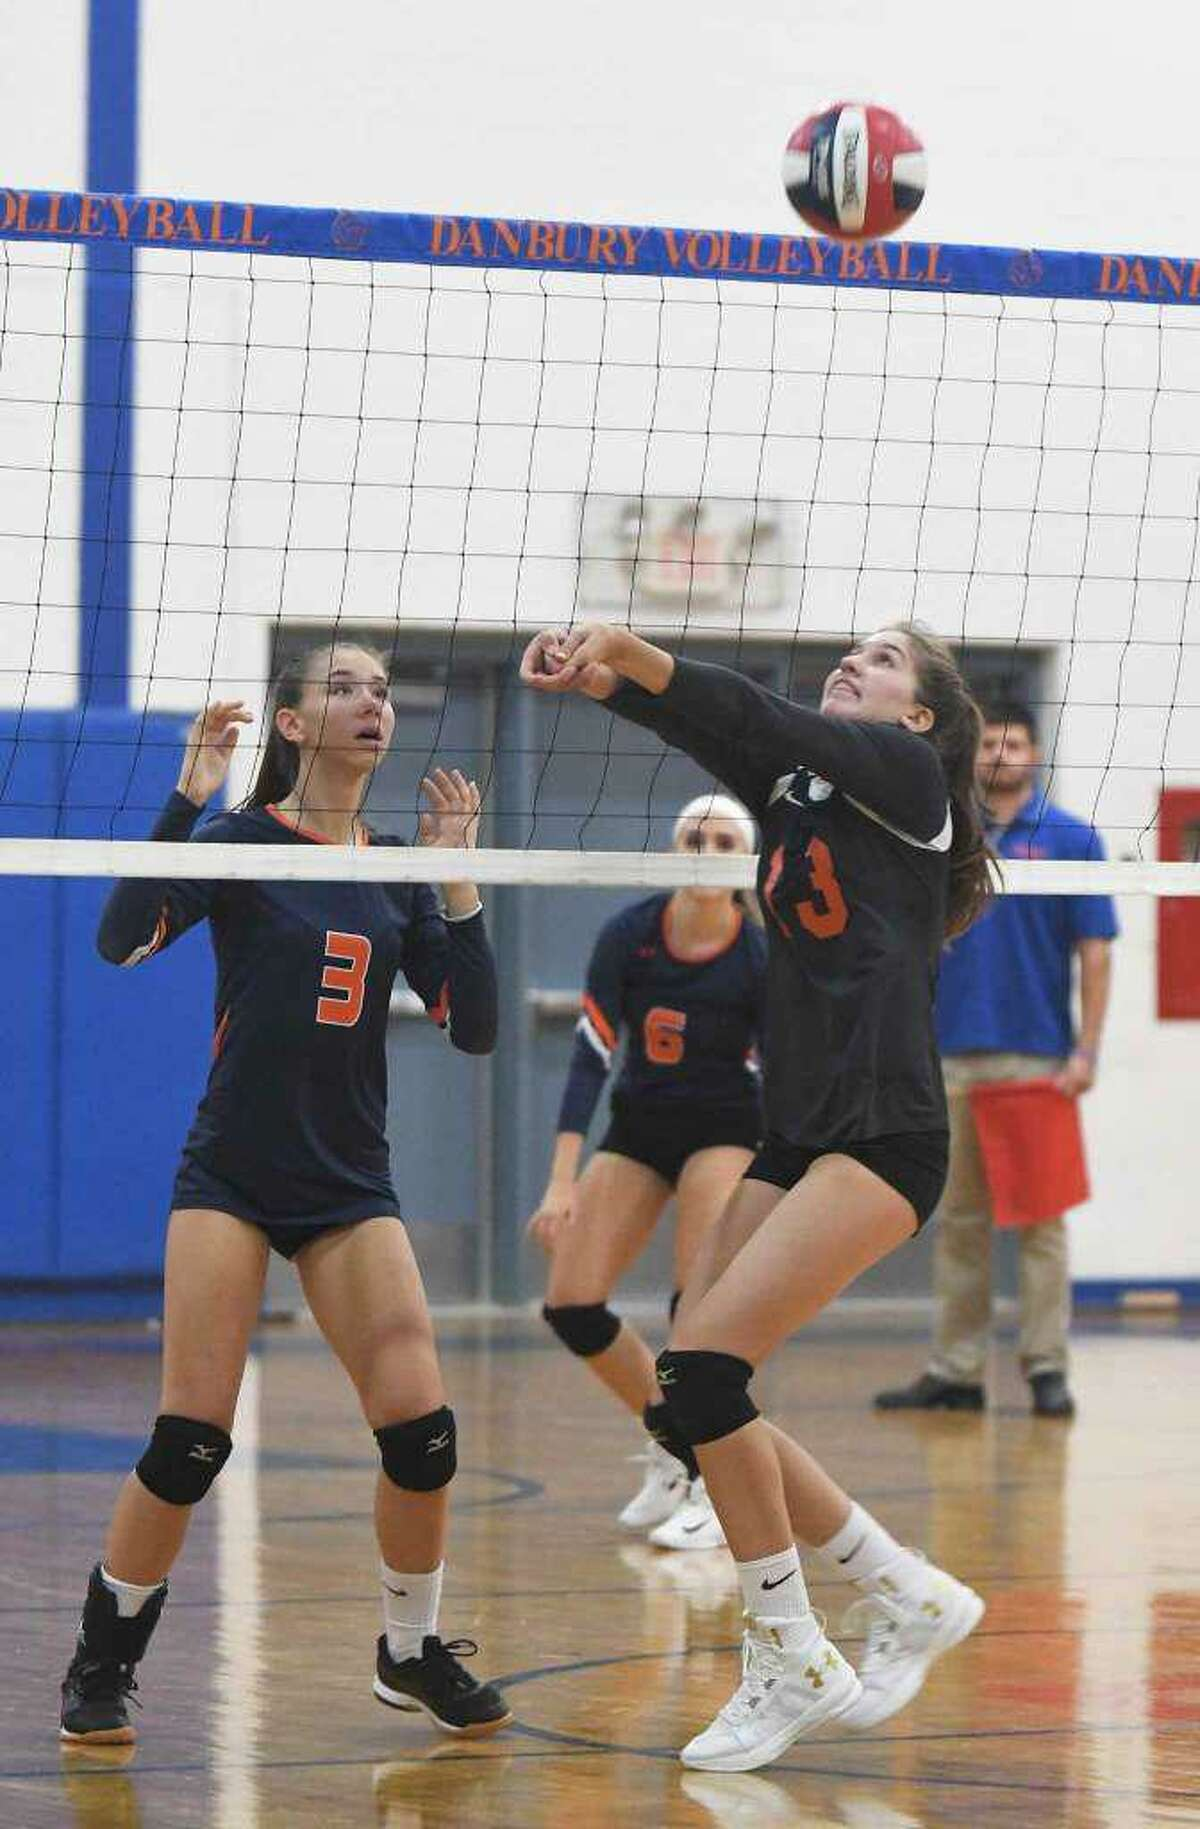 Isabel Voellmicke (#13) and the Ridgefield girls volleyball team qualified for the Class LL state tournament by beating Danbury, 3-1, in the final regular-season match last Friday. Voellmicke had11 assists and 11 service points (six aces) for the Tigers, who are 8-10 this year. Catherine Maguire added 14 kills and four blocks, while Mathilde Verbitsky contributed 13 kills and Julia Kocsis had six kills, 10 digs, and eight service points.